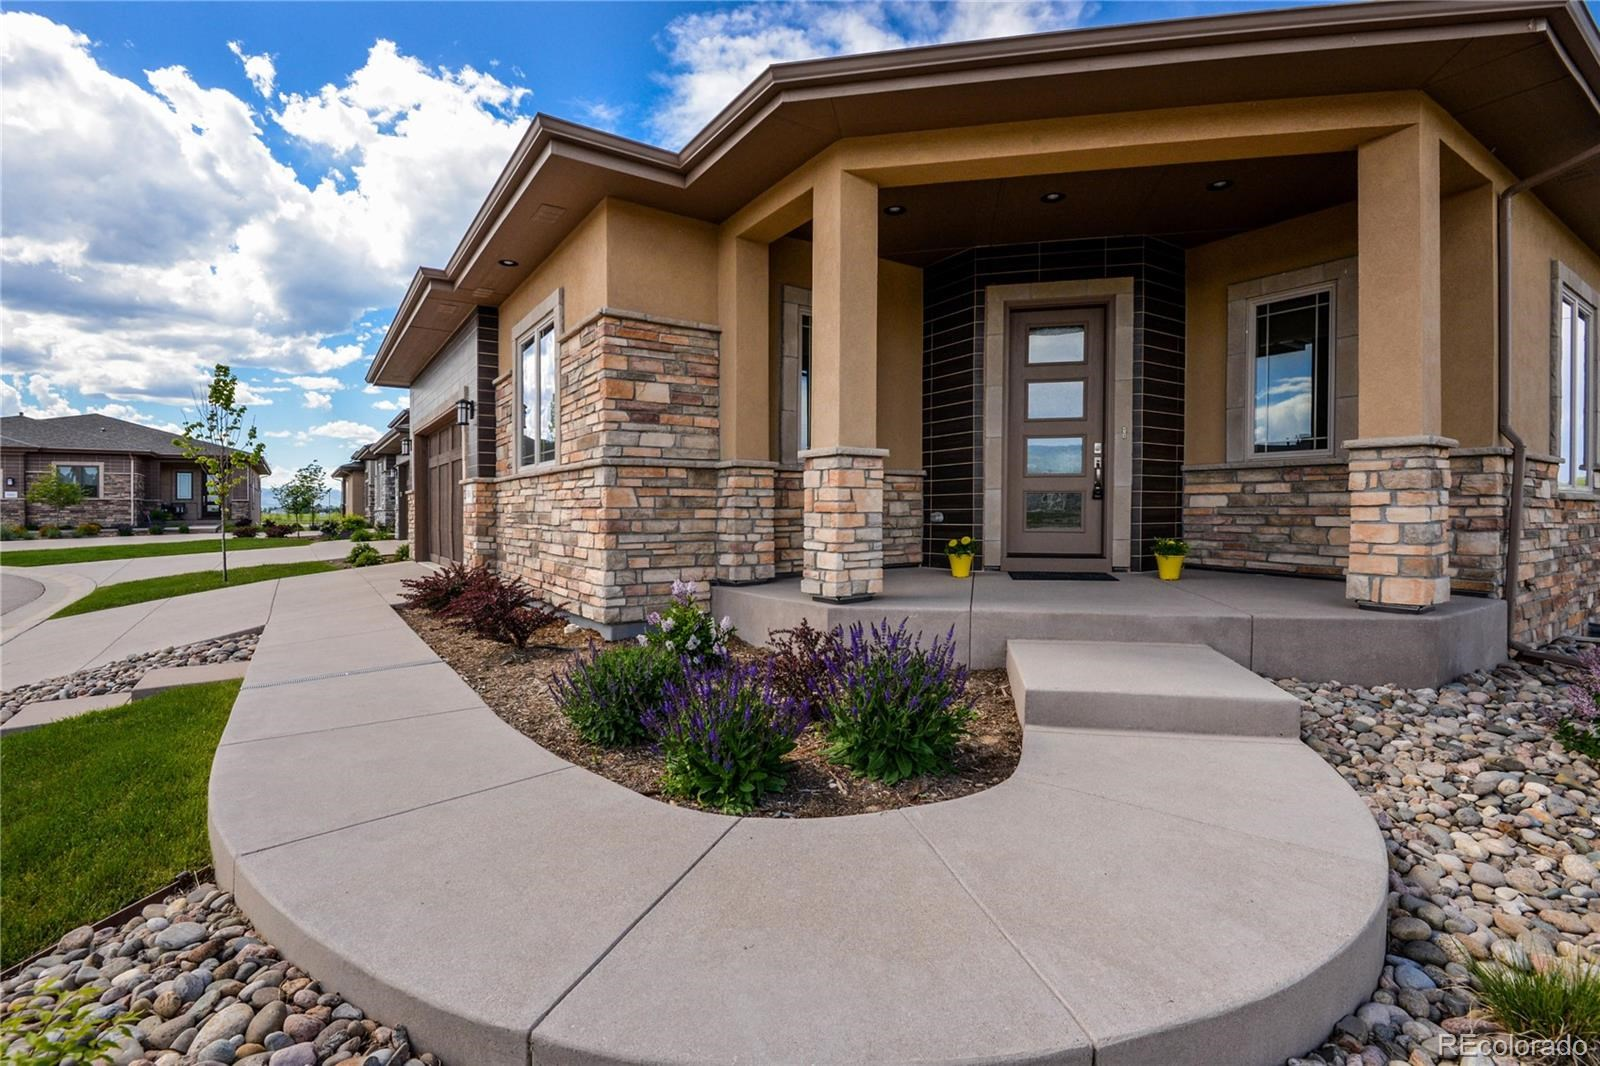 MLS# 7721729 - 2 - 6940 Summerwind Court, Timnath, CO 80547